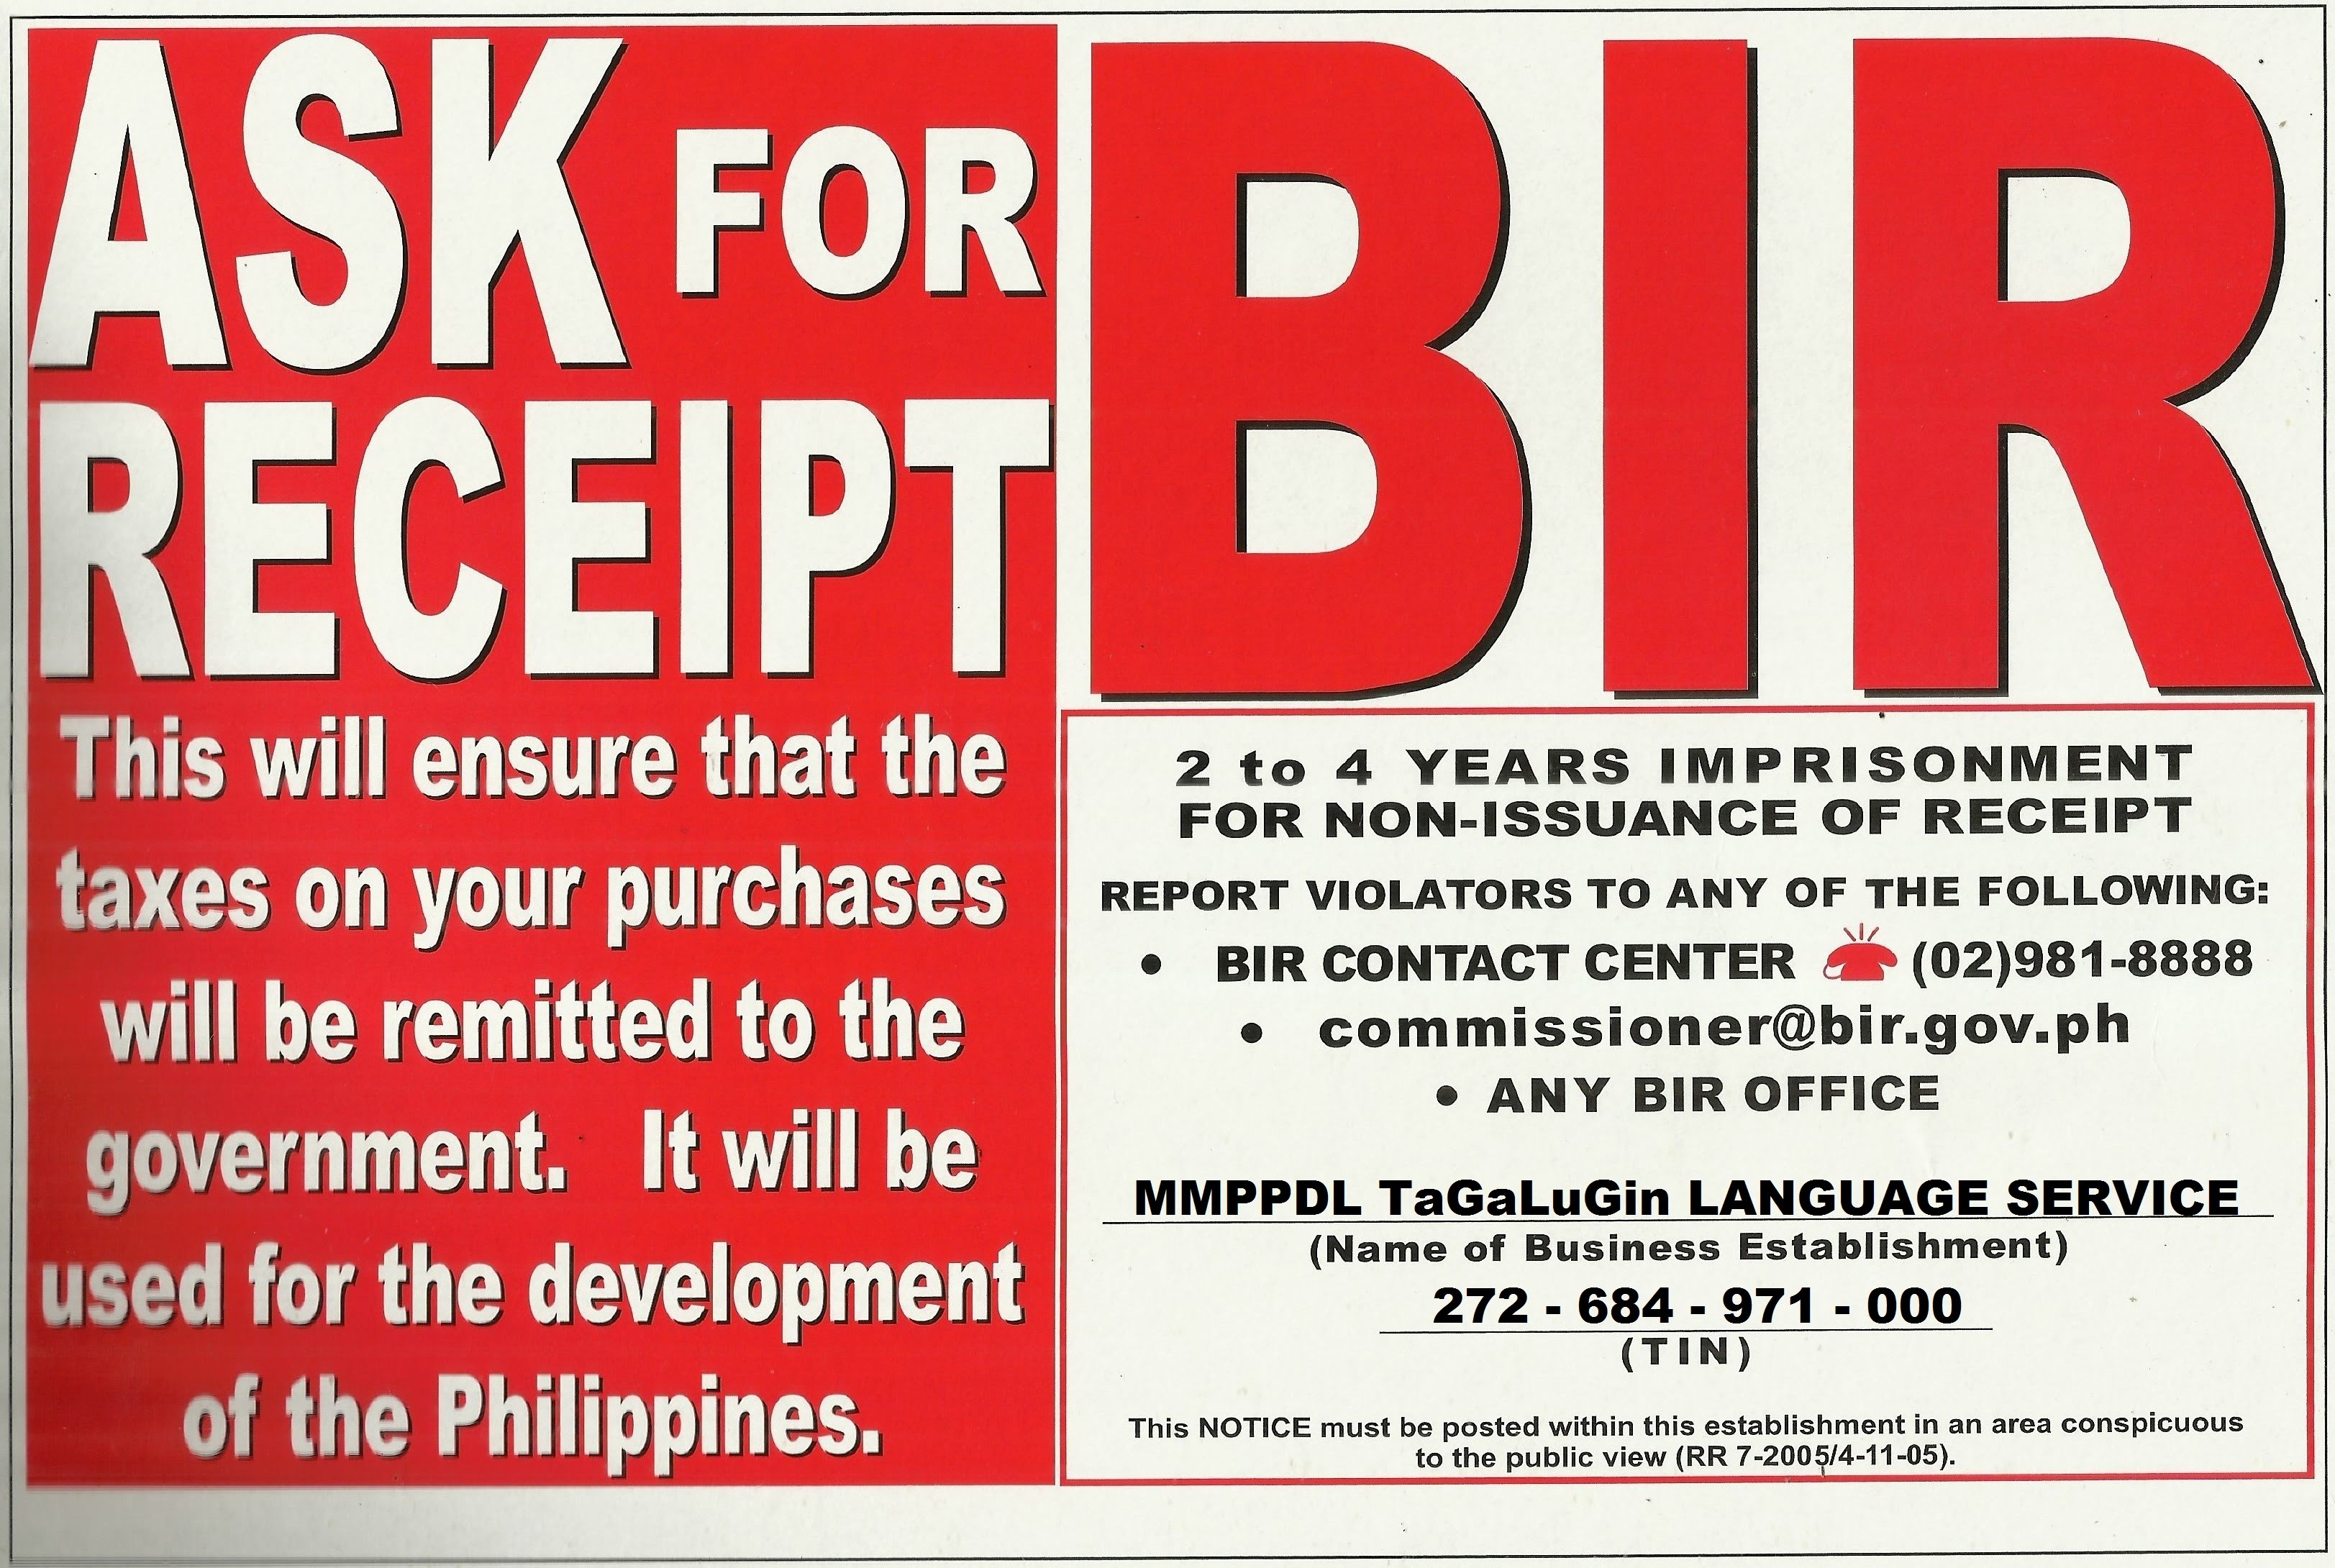 http://www.tagalugin.com/home/BIR%20Receipt%20Sign%202.jpg